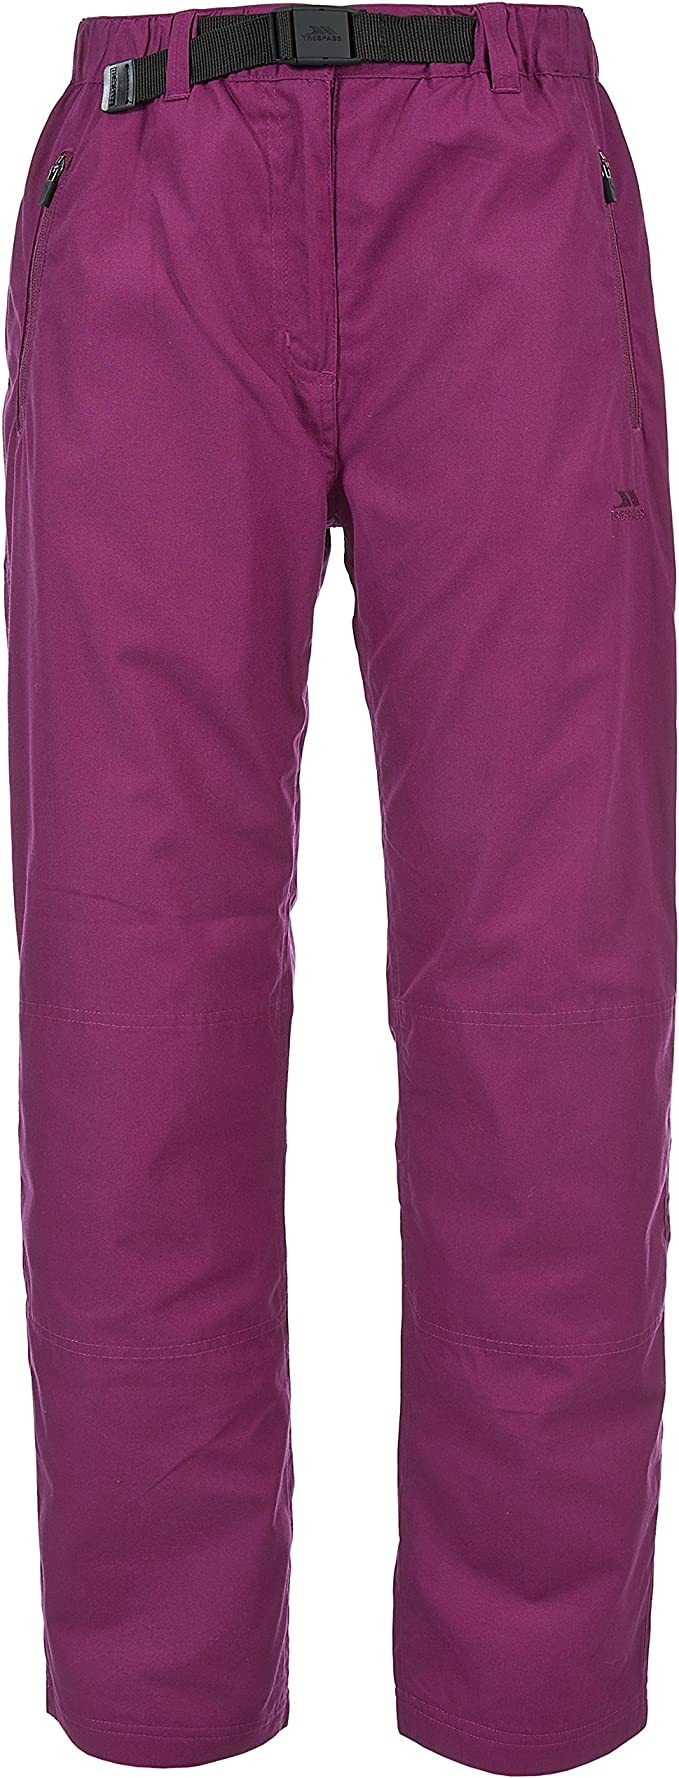 Trespass Contest Womens Active Trousers Lightweight Pants for Camping Hiking